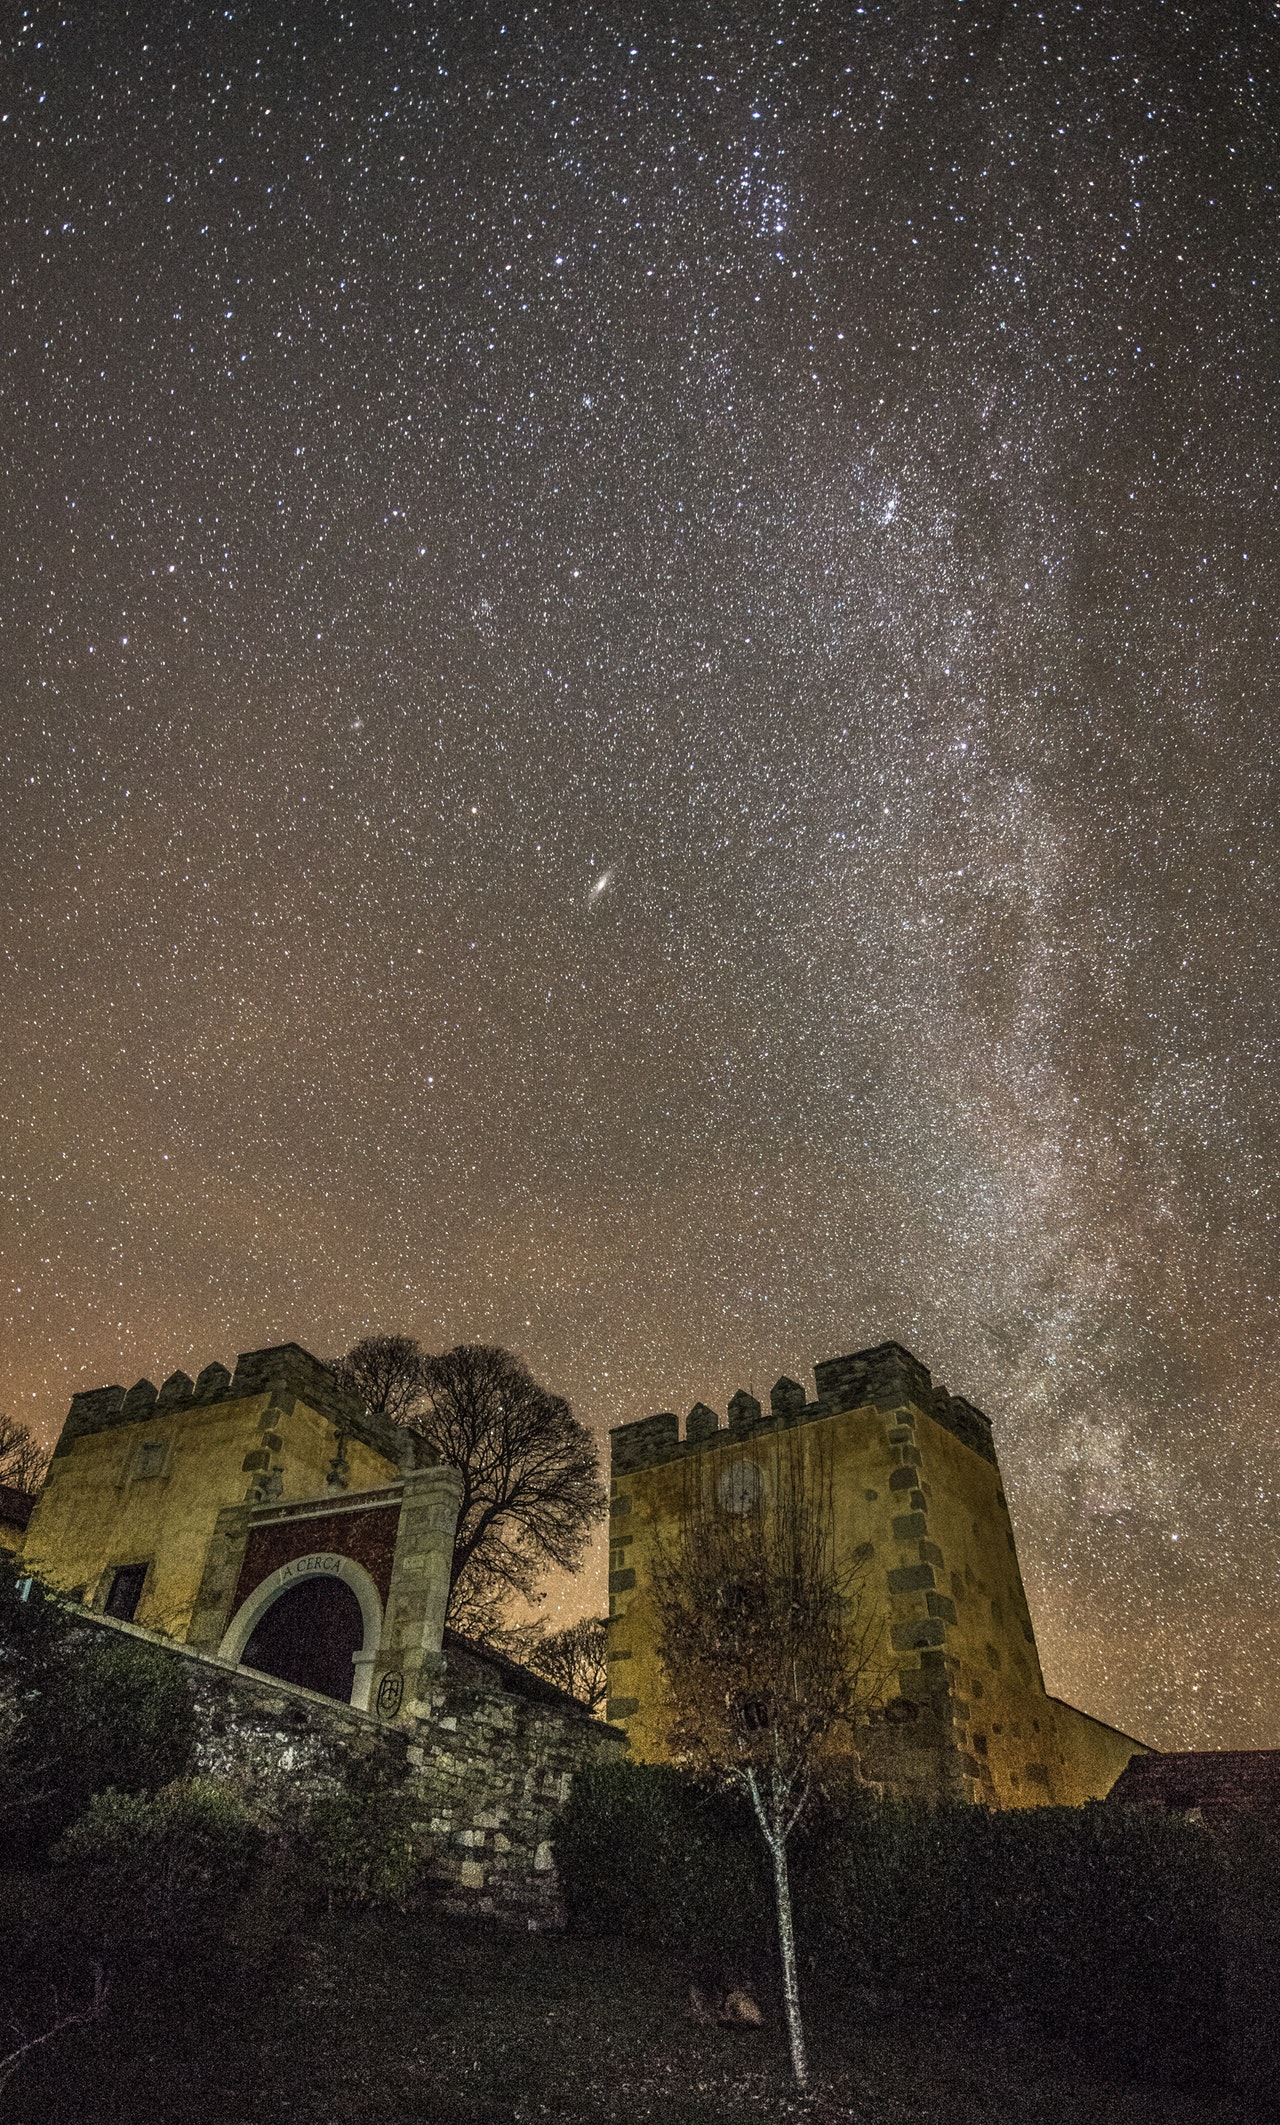 milky way above castle